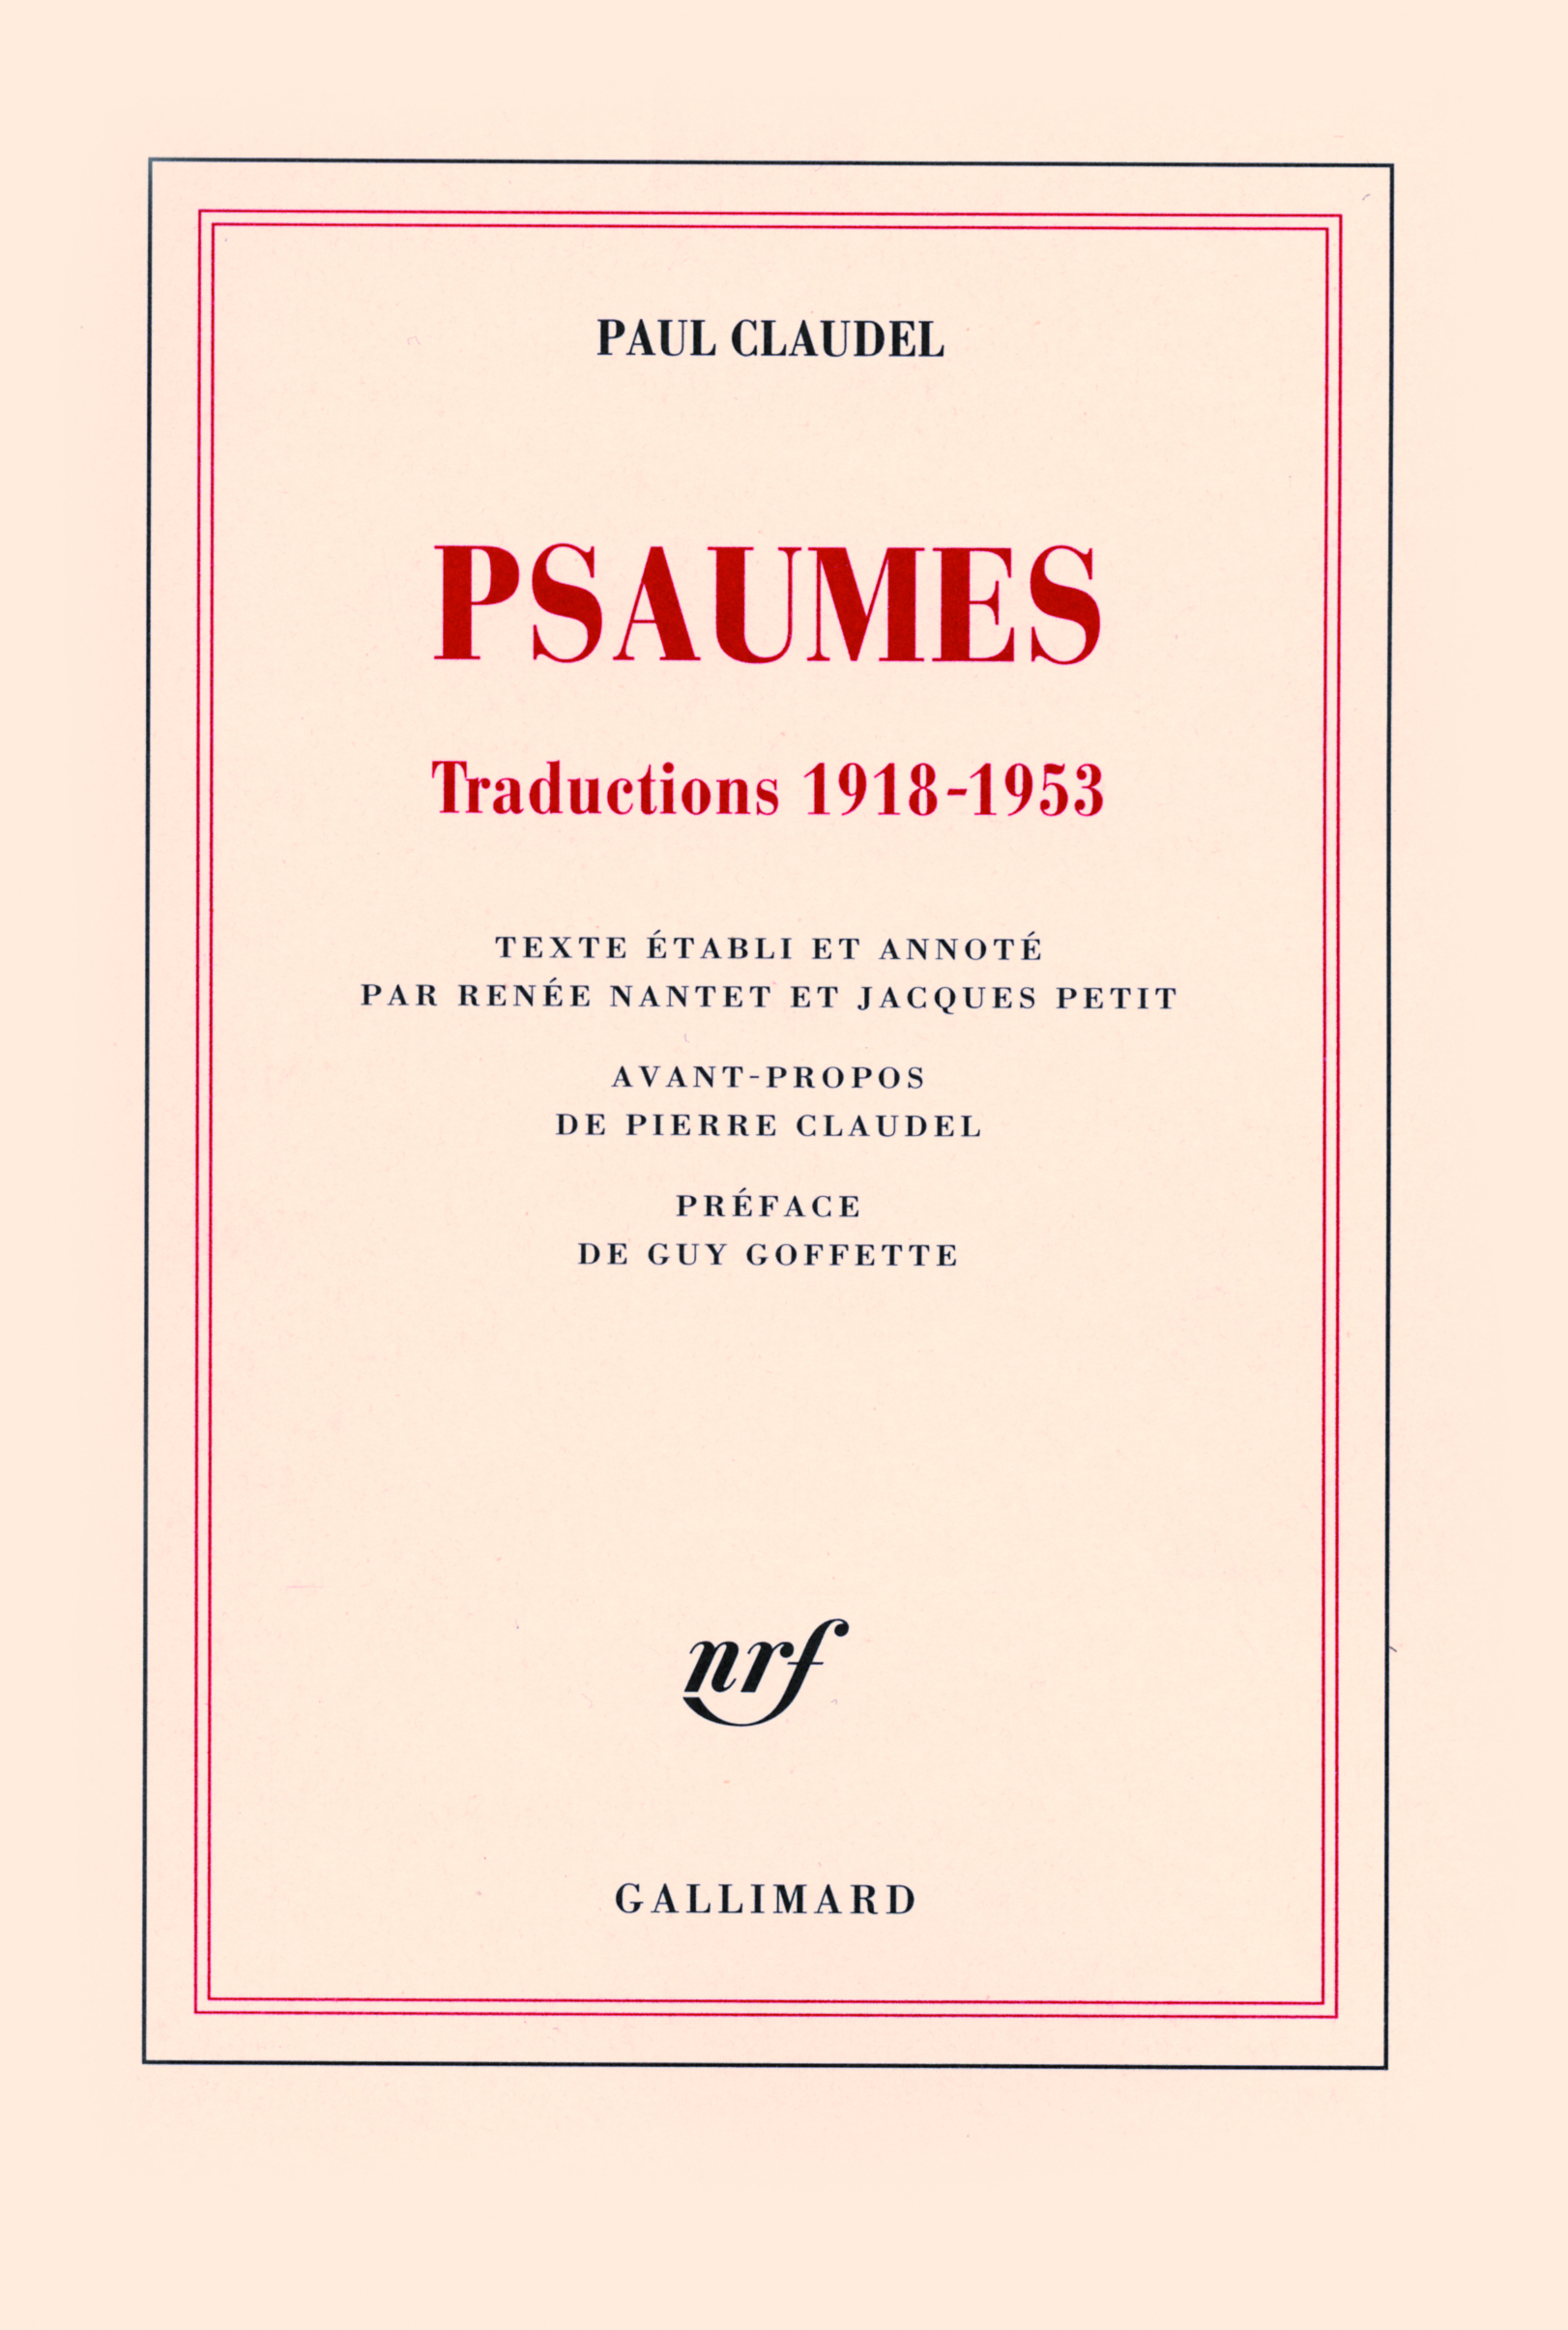 PSAUMES TRADUCTIONS [LATINES], 1918-1953 - TRADUCTIONS 1918-1953